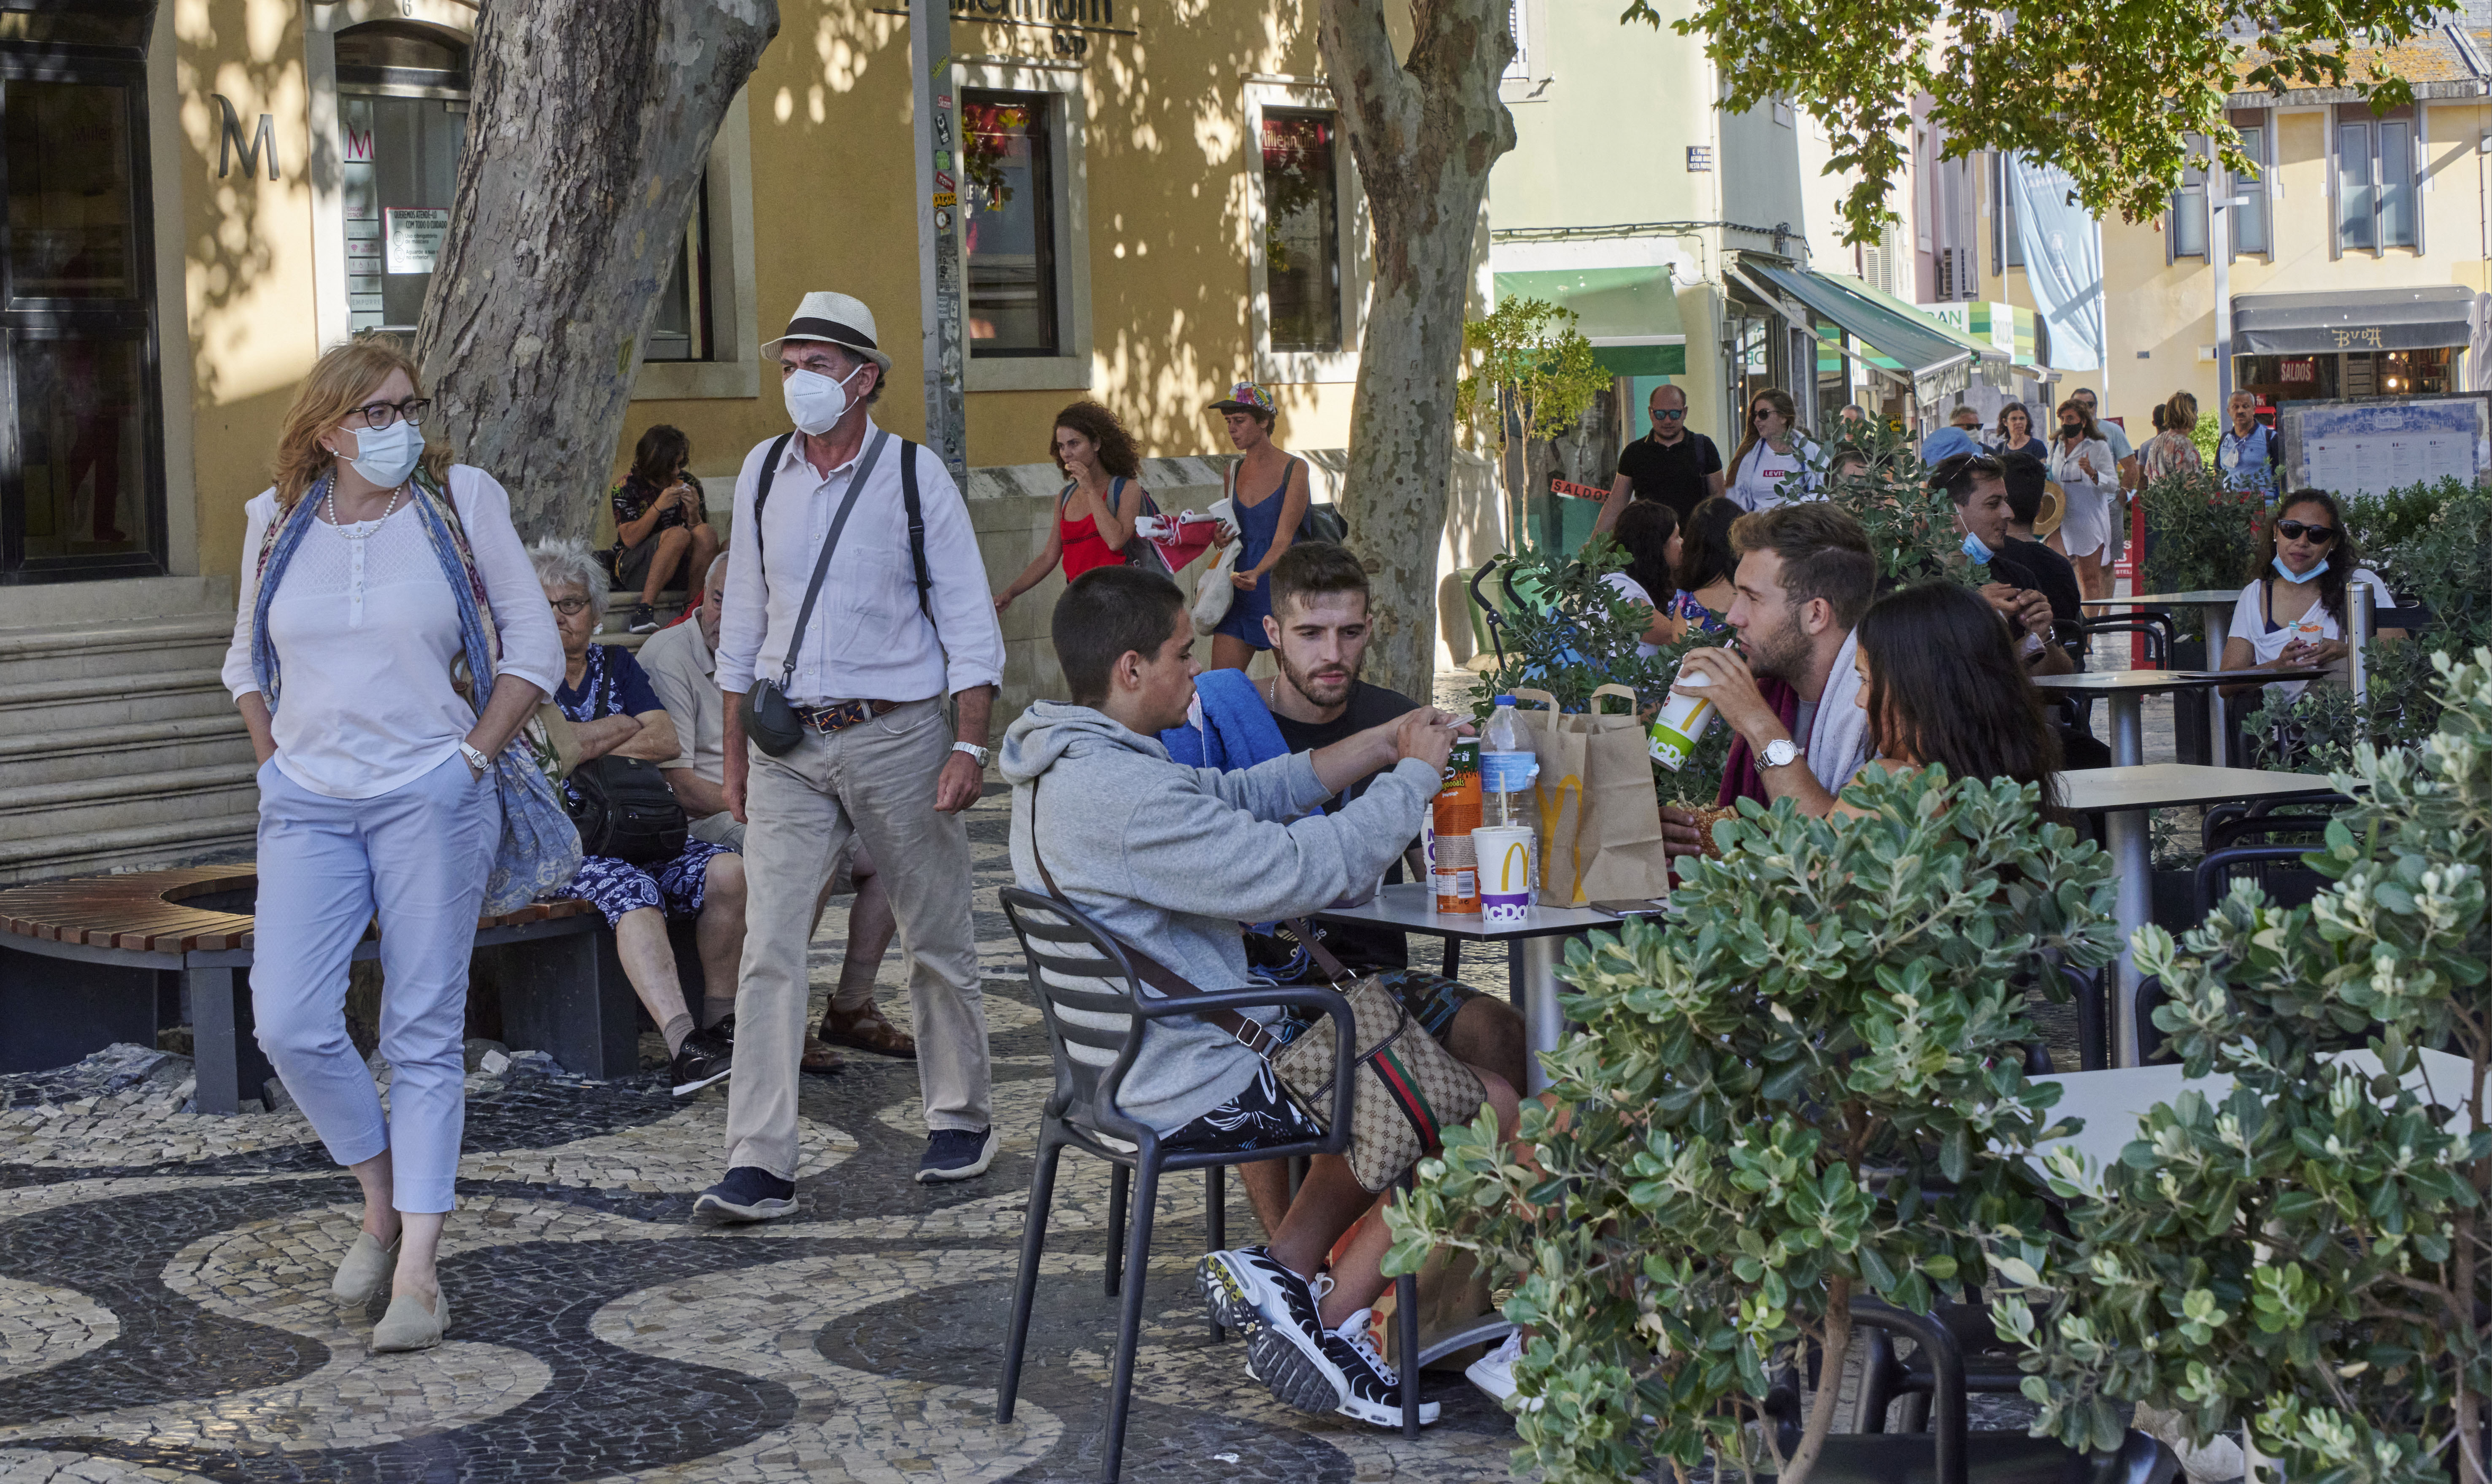 People spend time outside in Cascais, Portugal, on August 9.